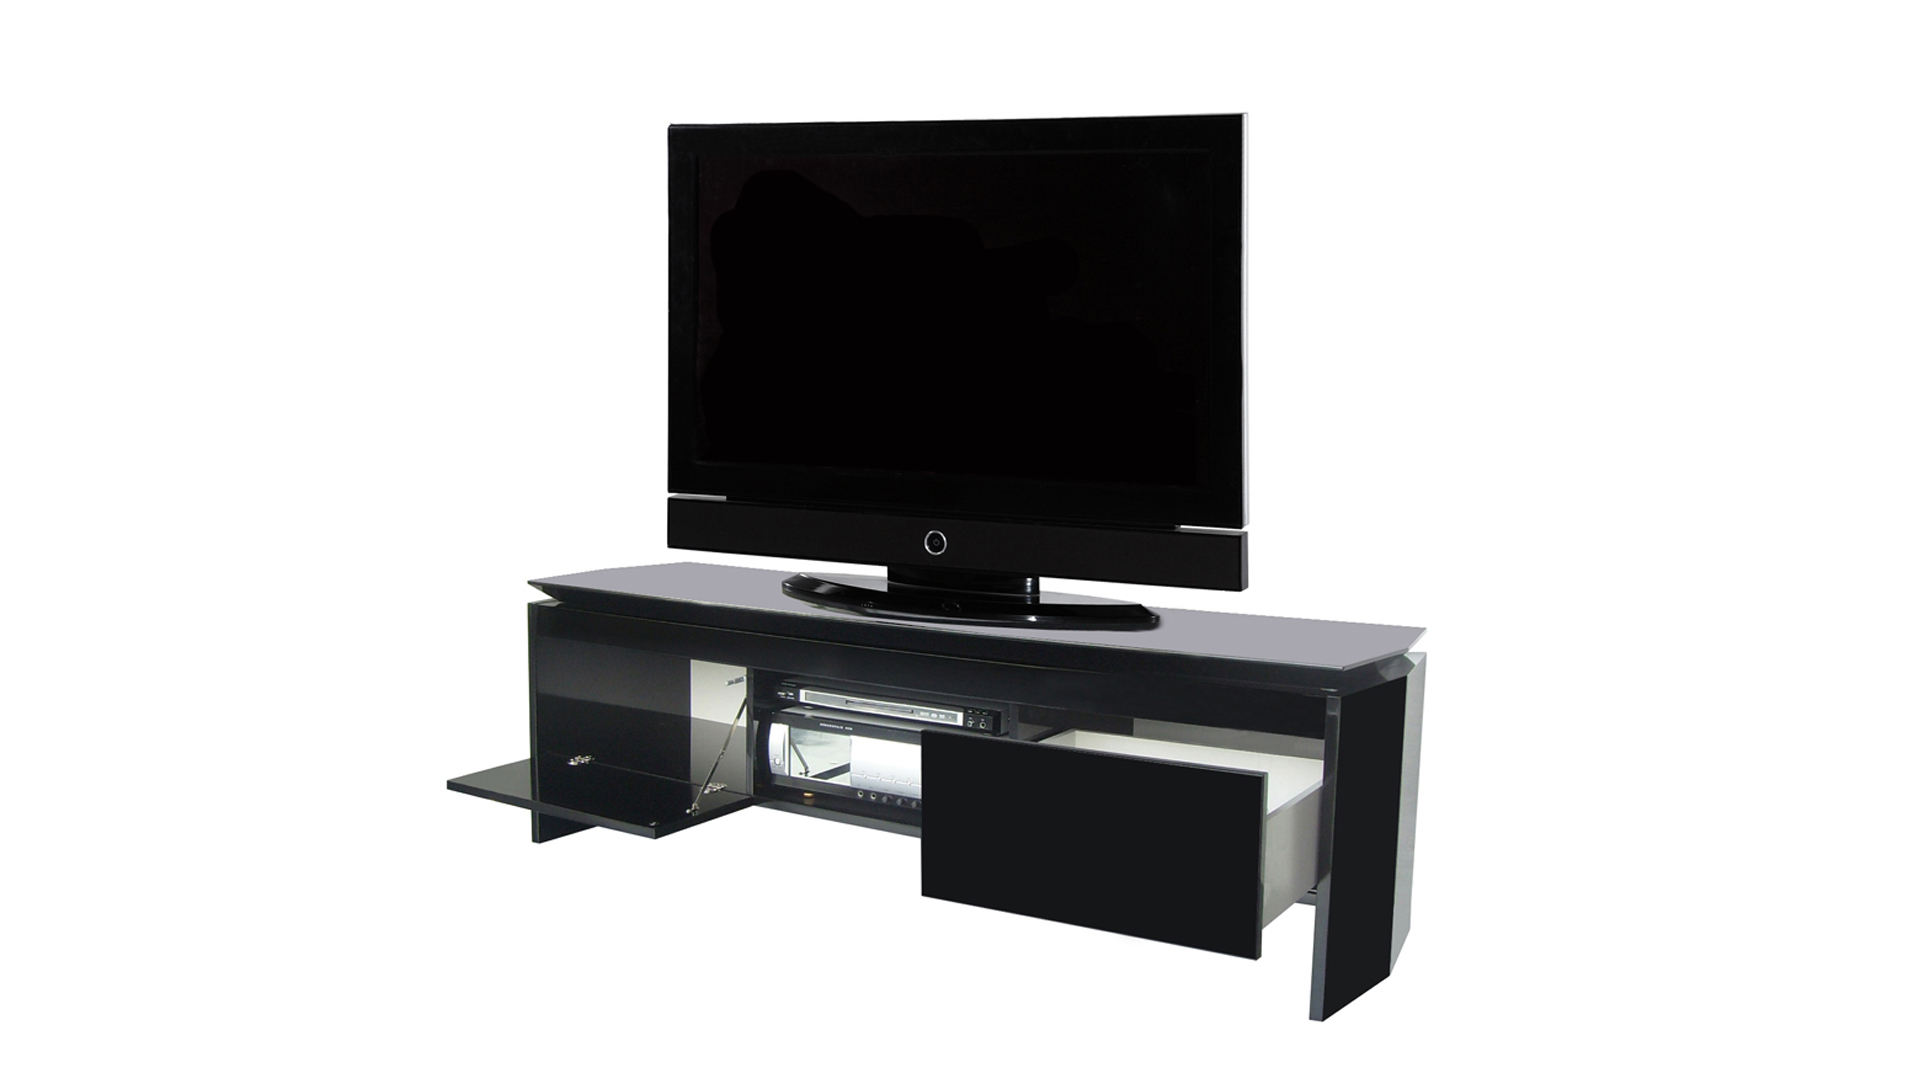 meuble tv noir plateau tournant sammlung. Black Bedroom Furniture Sets. Home Design Ideas